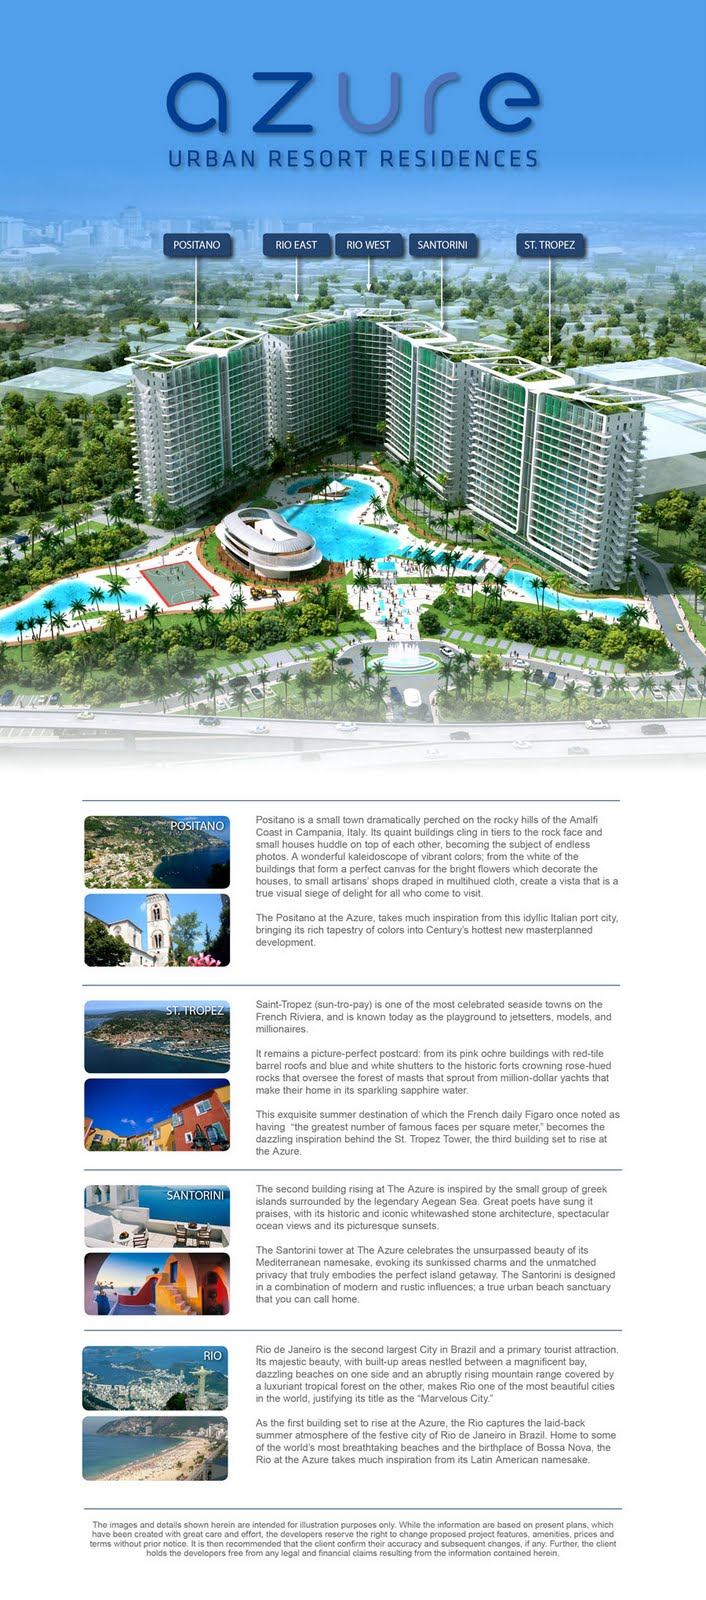 Azure Urban Resort Residences Azure Urban Resort Residences